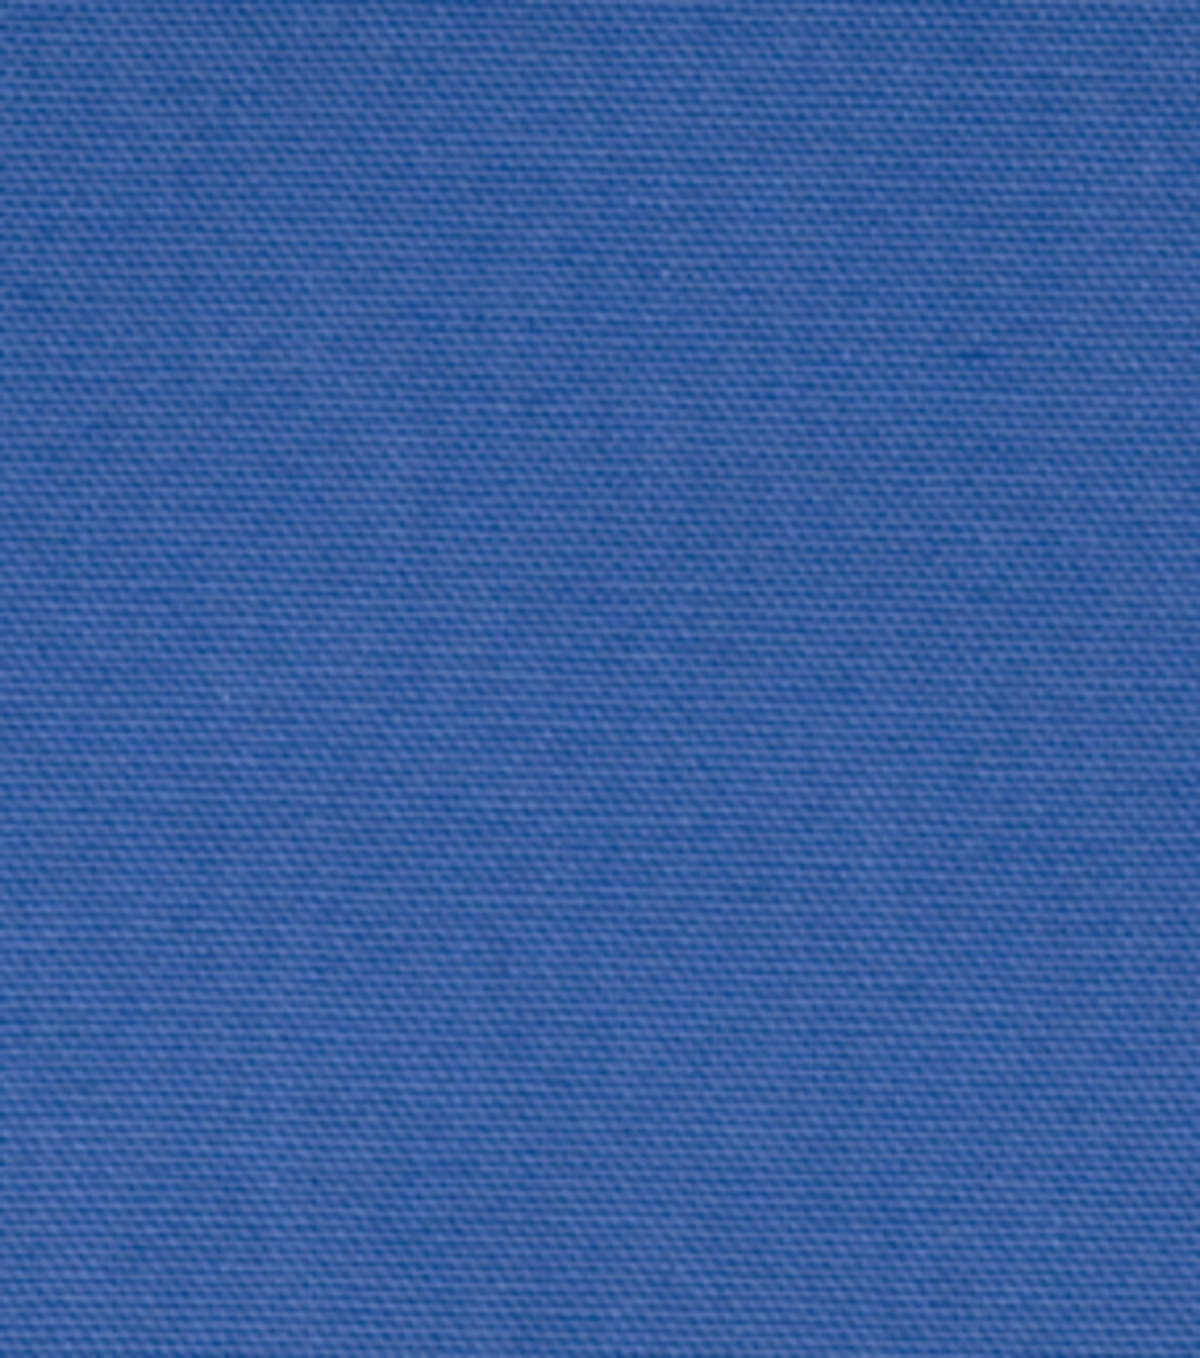 Home Decor 8\u0022x8\u0022 Fabric Swatch-Signature Series Legacy Cotton Wedgwood